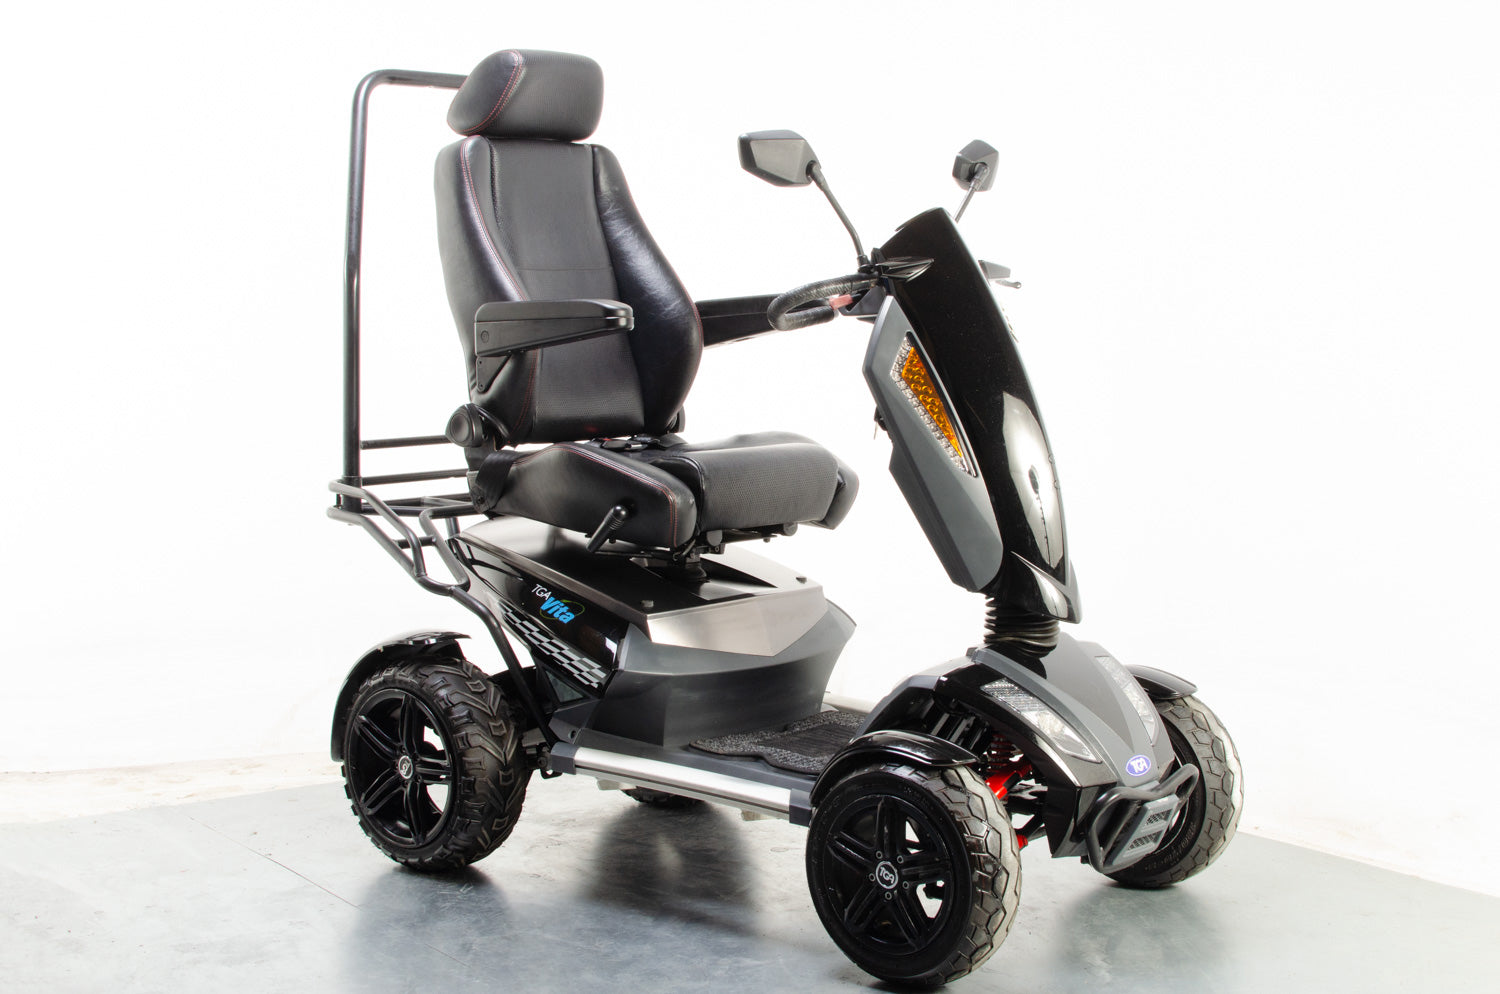 2015 TGA Vita X 8mph Ultimate Large All Terrain Mobility Scooter in Black